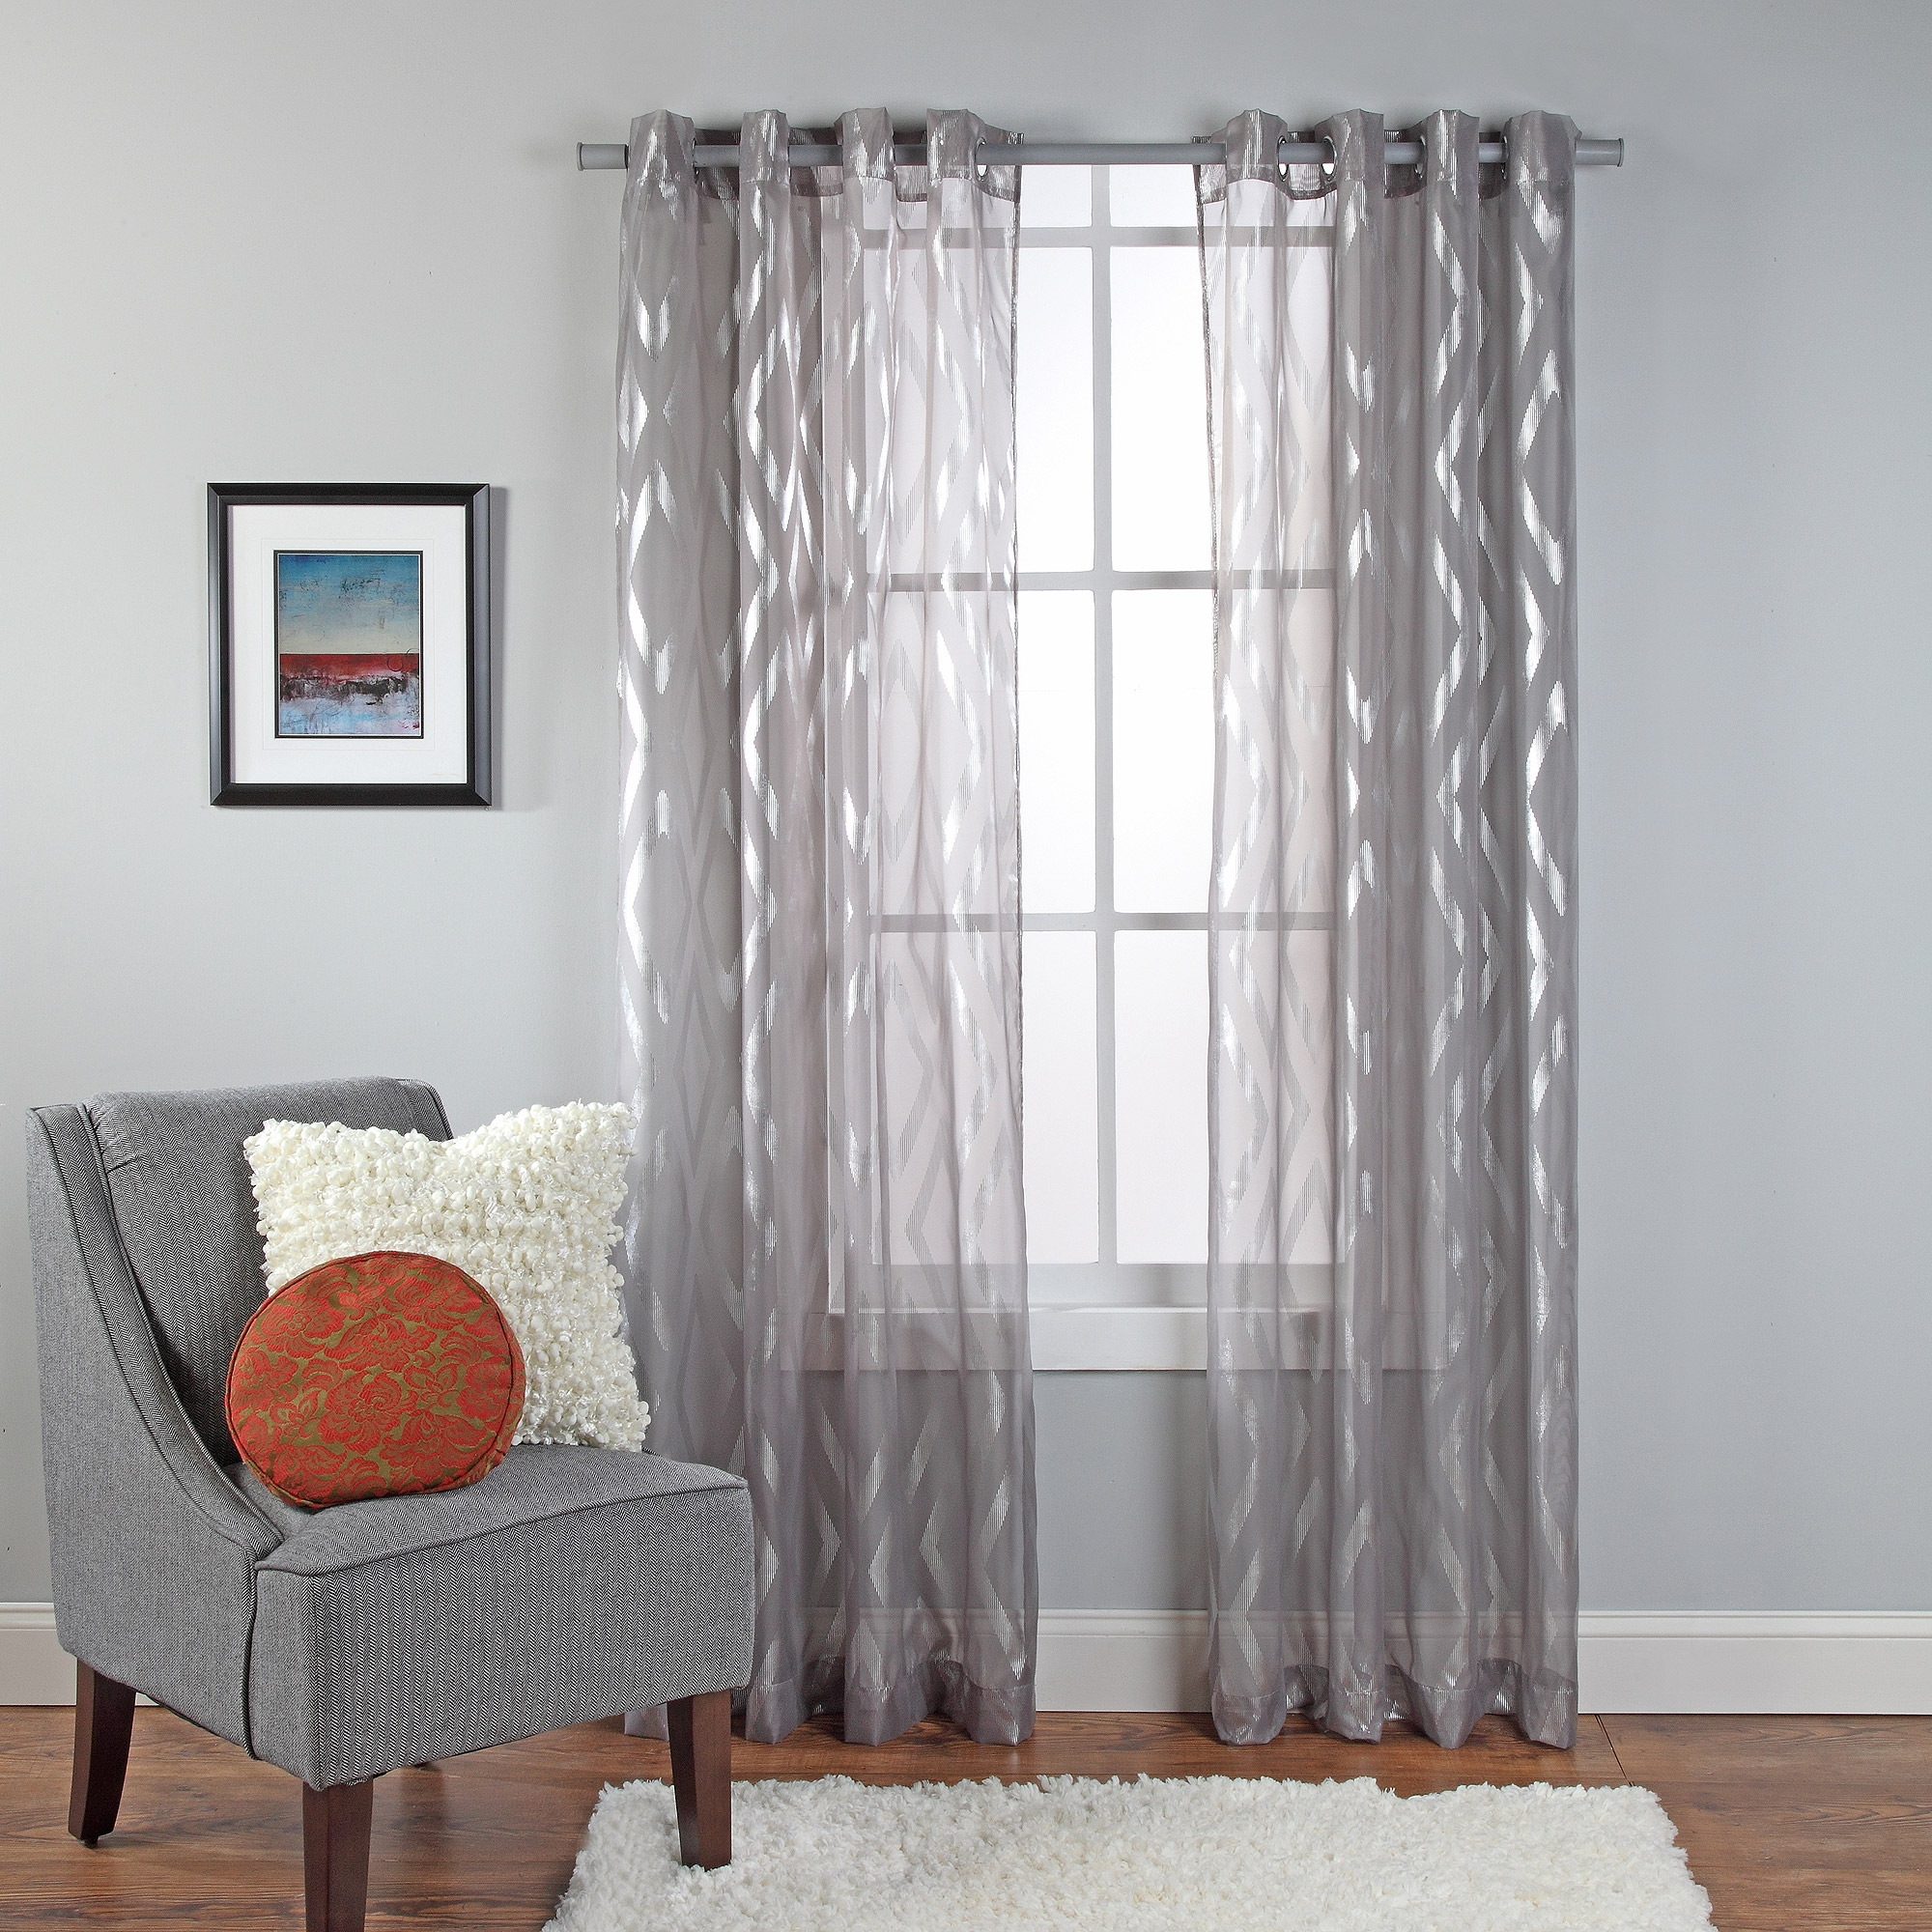 Gray Blackout Curtains Grommet Best Shades Home Depot Silver Grey Pertaining To Extended Length Curtains (Image 13 of 15)